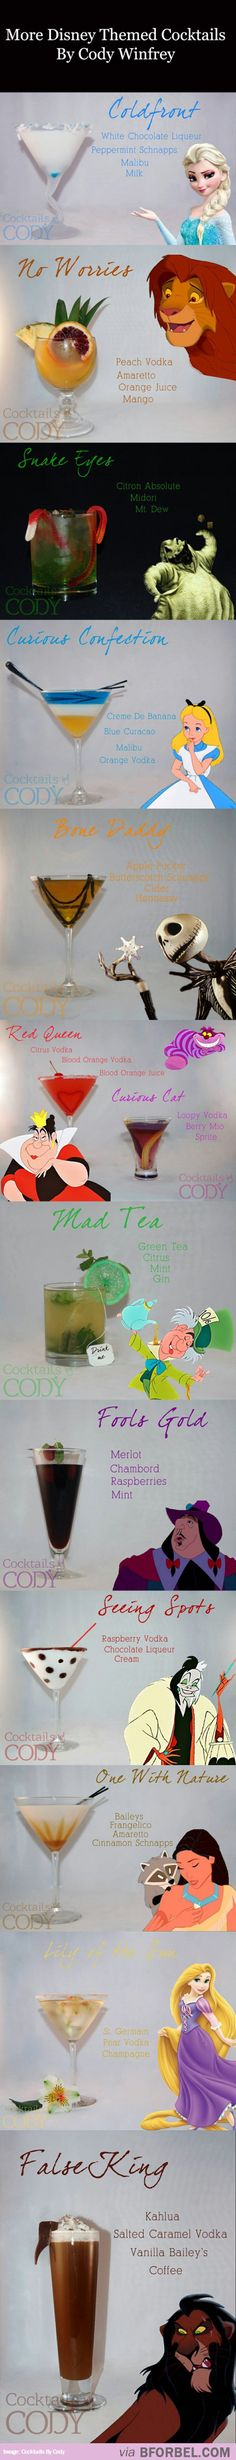 12 More Disney-Themed Cocktails. Disney and cocktails. Disney Cocktails, Cocktails Bar, Party Drinks, Cocktail Drinks, Cocktail Recipes, Drink Recipes, Party Favors, Party Recipes, Disney Themed Drinks